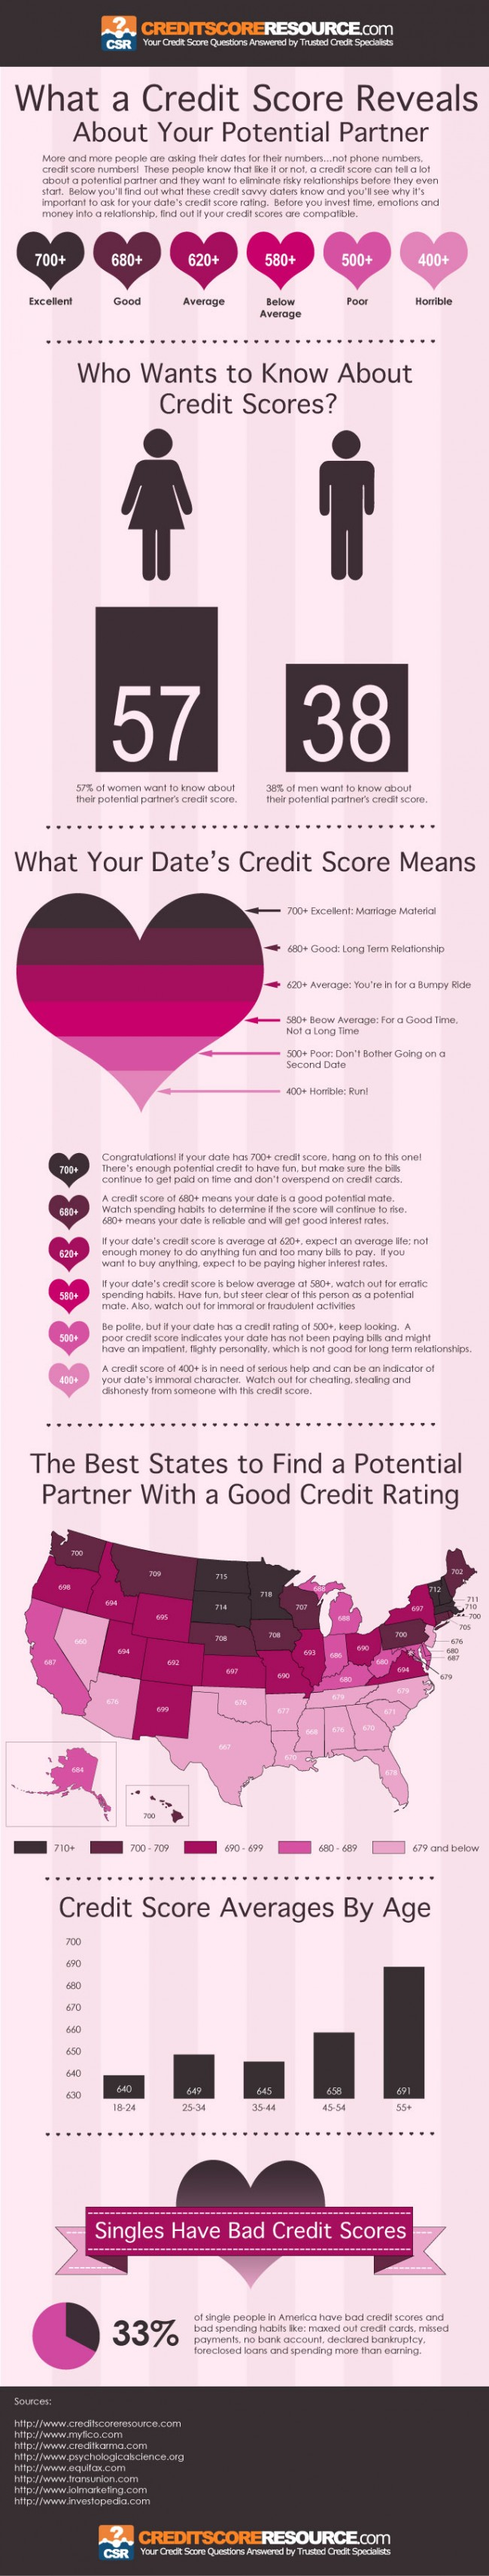 credit scores dating creditscoreresource com 11 650x3427 What a Credit Score Reveals About Your Potential Partner